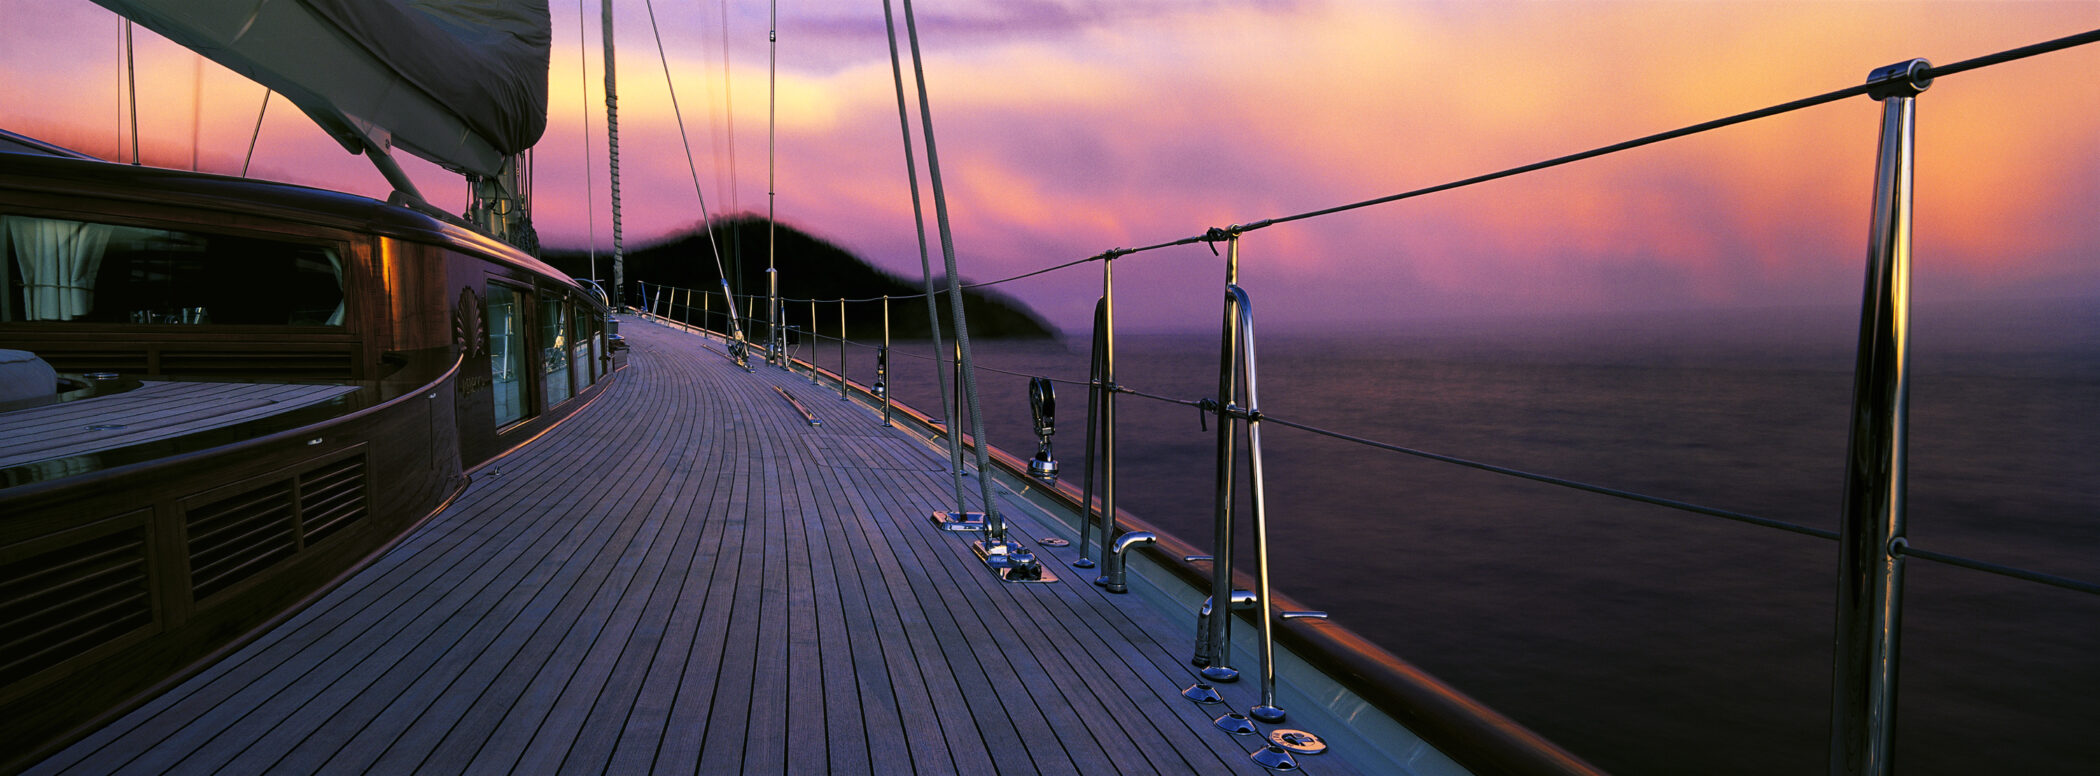 G42 - Starboard Deck in Antigua